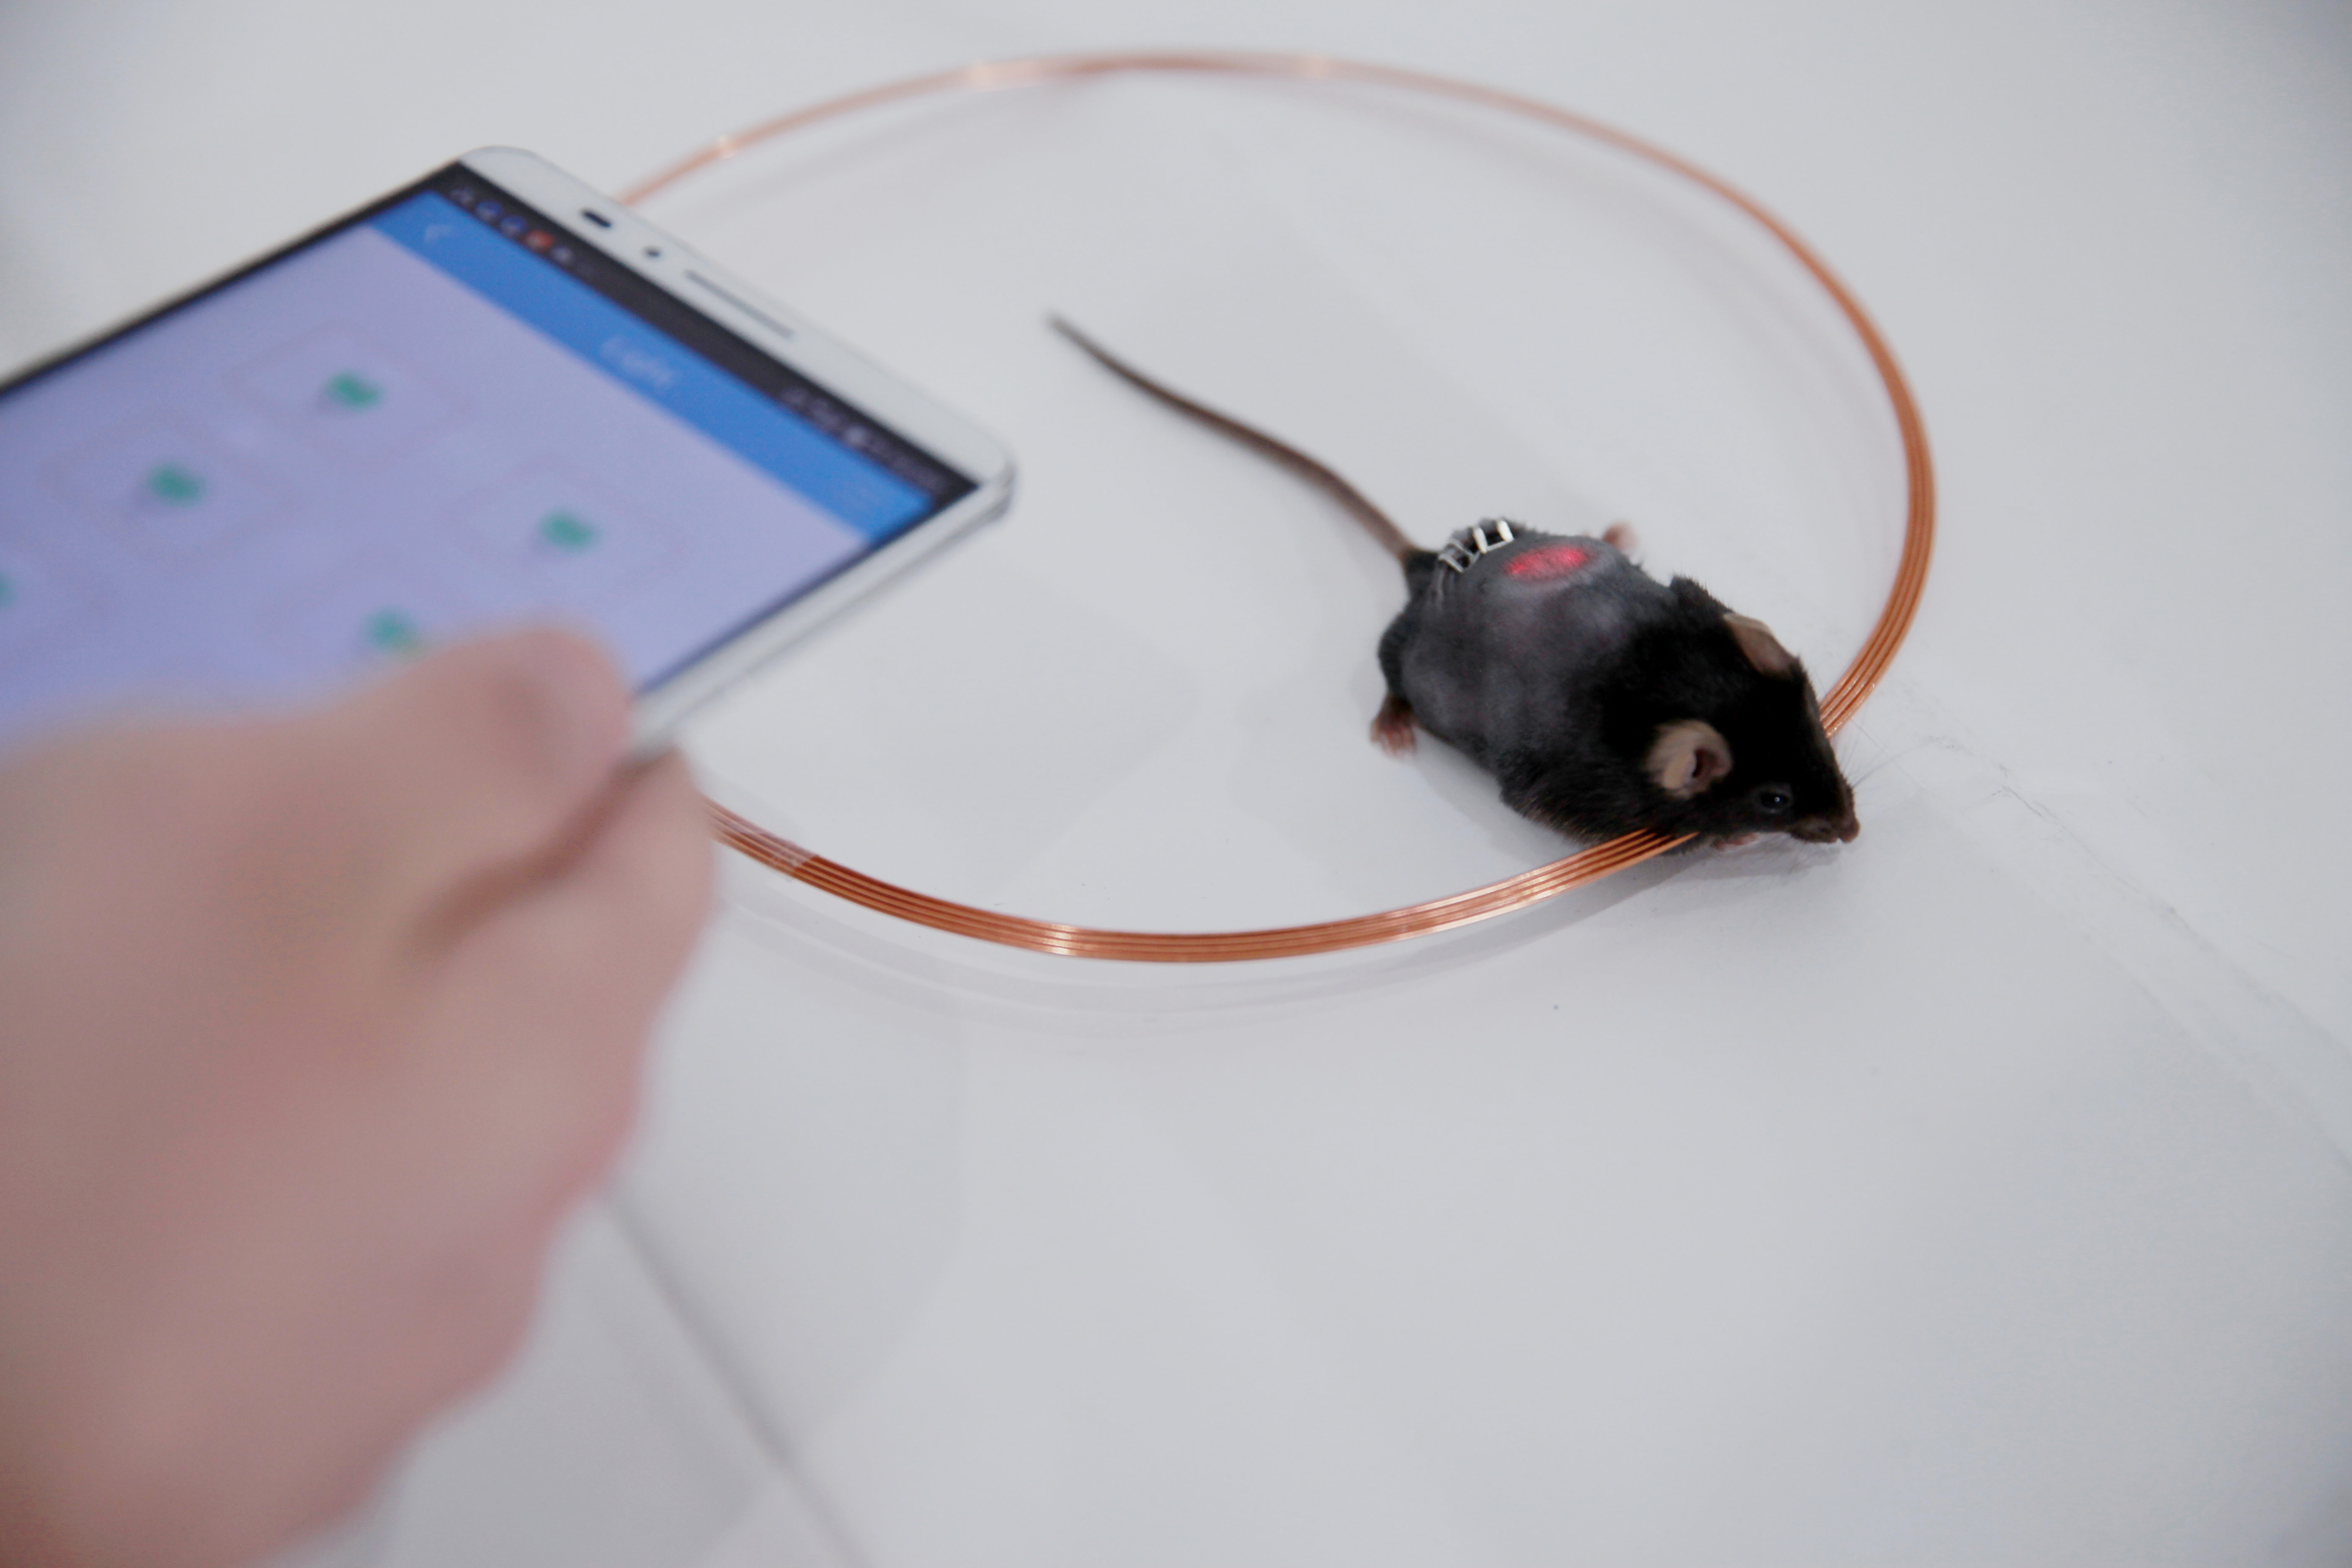 A researcher uses a smartphone to control light levels in mice with implanted LED discs.